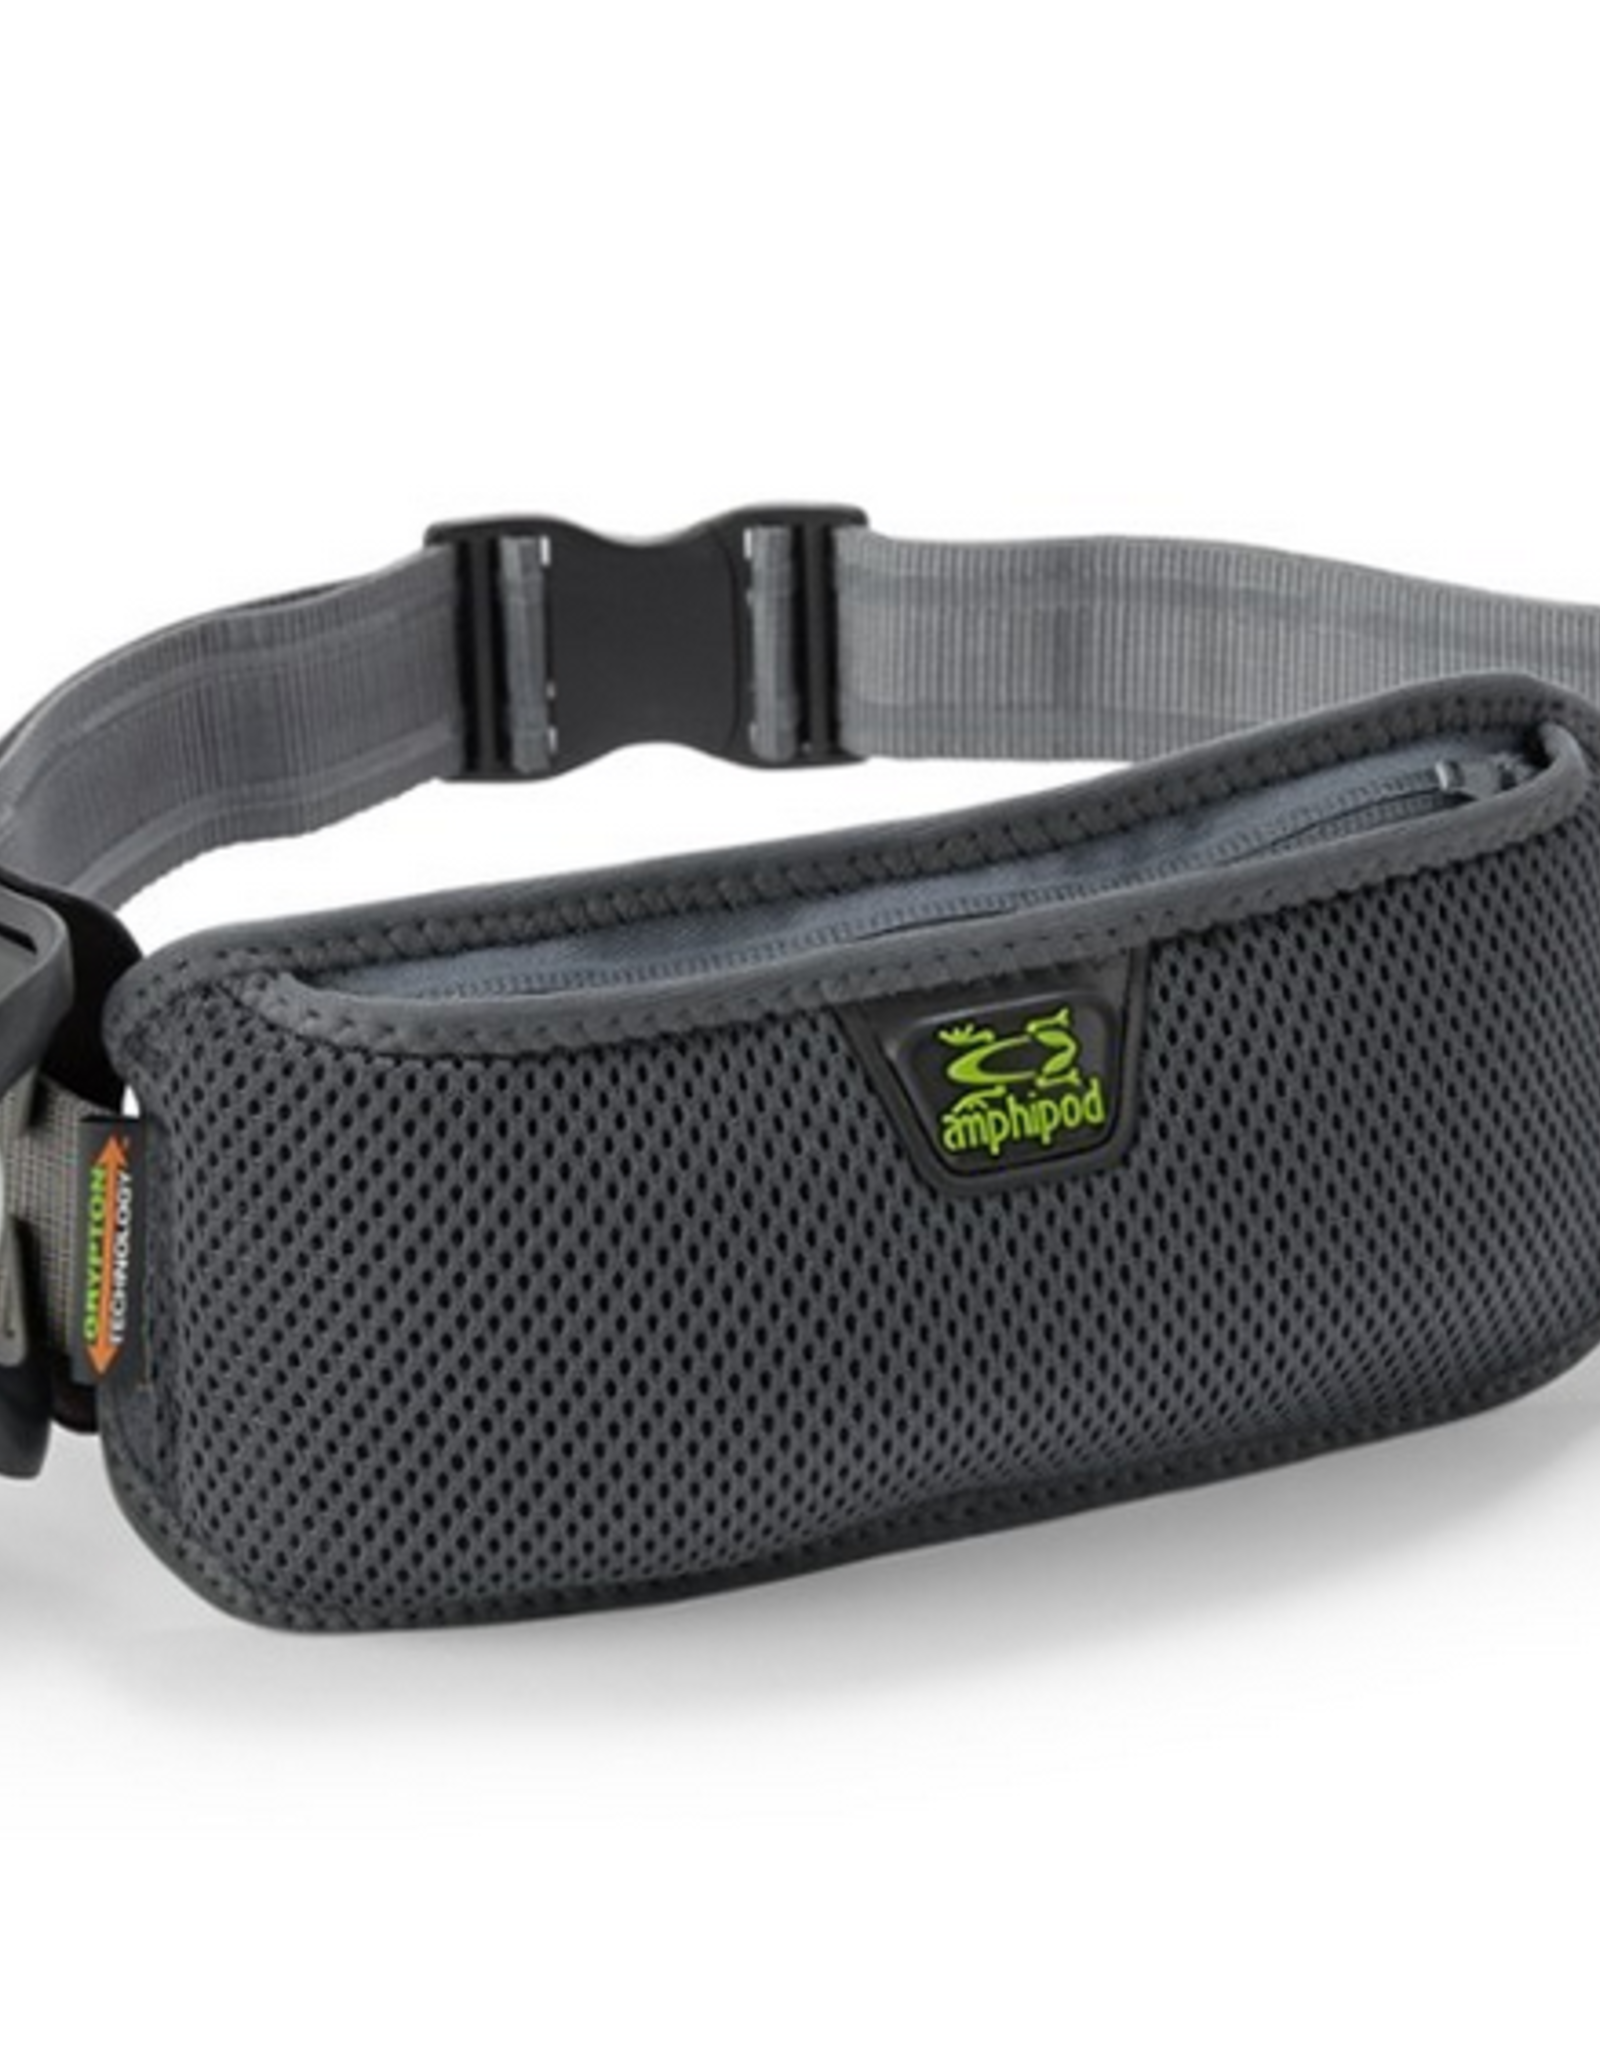 Amphipod RUNLITE 10K 2 BOTTLE HYDRATION BELT